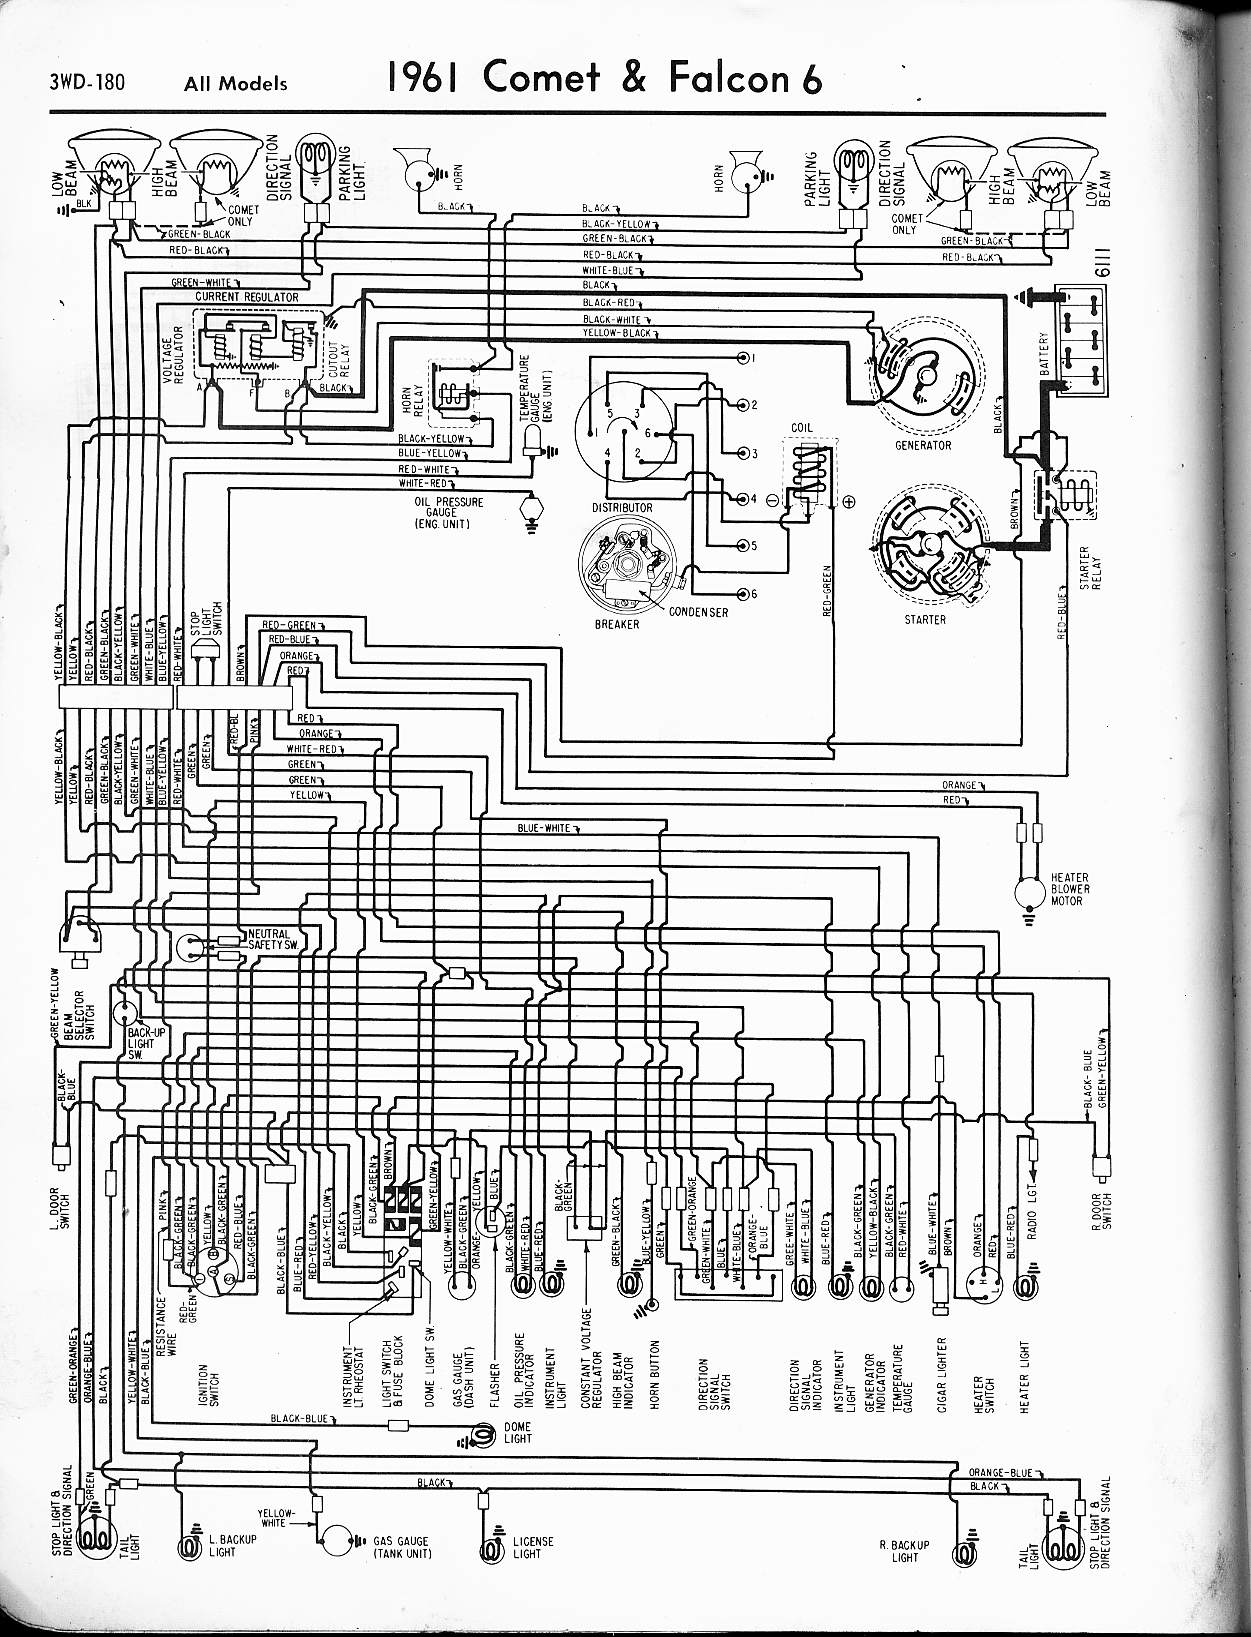 57-65 Ford Wiring Diagrams on 79 corvette ac system diagram, 1969 corvette vacuum hose diagram, 1973 corvette carburetor, 1987 corvette air conditioner diagram, 1973 corvette coil, 1973 corvette exhaust, 1973 corvette alternator wiring, 1973 corvette dash, 1973 corvette brakes, 1973 corvette engine, 1973 corvette starter wiring, 1973 corvette oil filter, 1973 corvette speedometer, 1973 corvette power window circuit, 1973 corvette cover, 1973 corvette service manual, 88 corvette vacuum diagram, 1973 corvette frame, 1974 corvette fuse box diagram, 1973 corvette air cleaner,